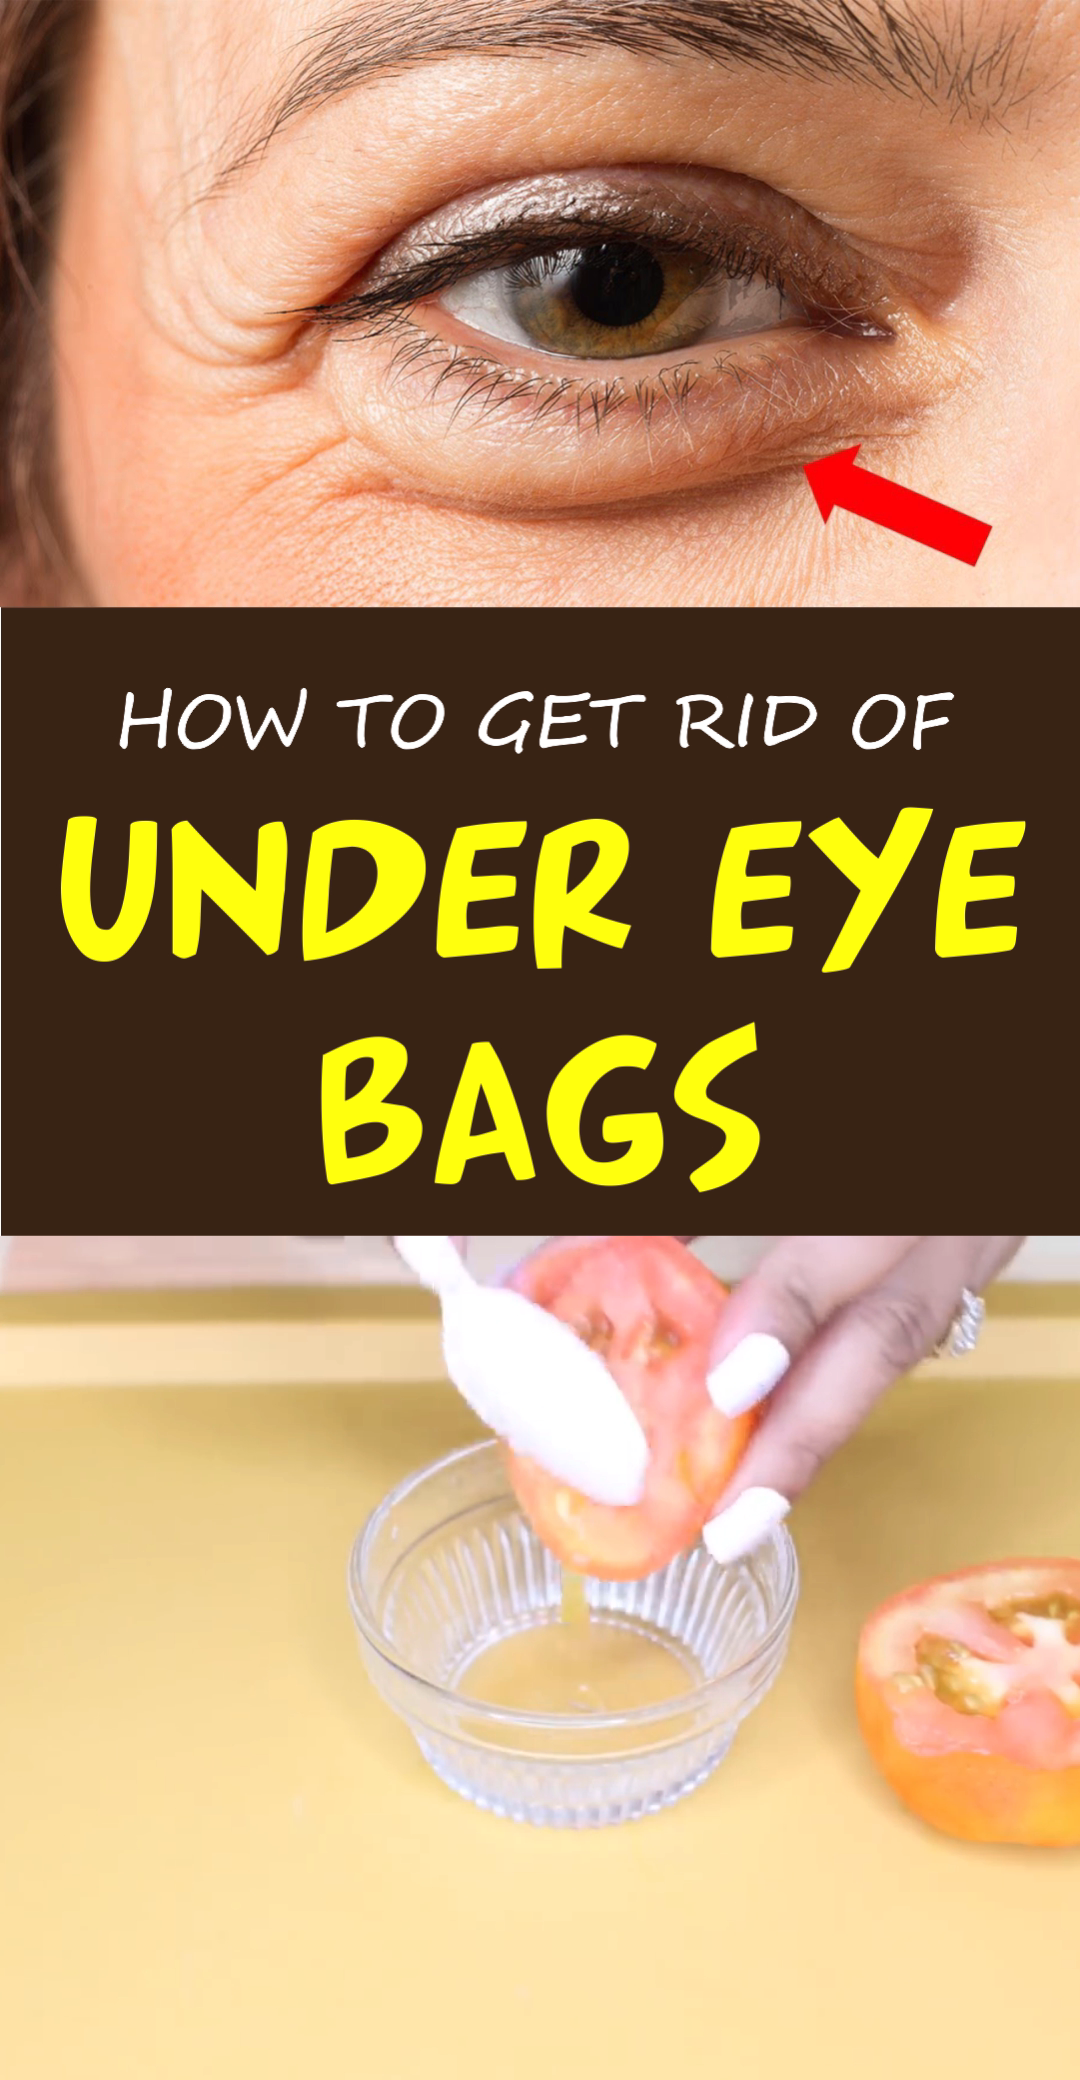 caaf104b1d6e3ff3589c41746ec655f3 - How To Get Rid Of Dark Circles Under Your Arms